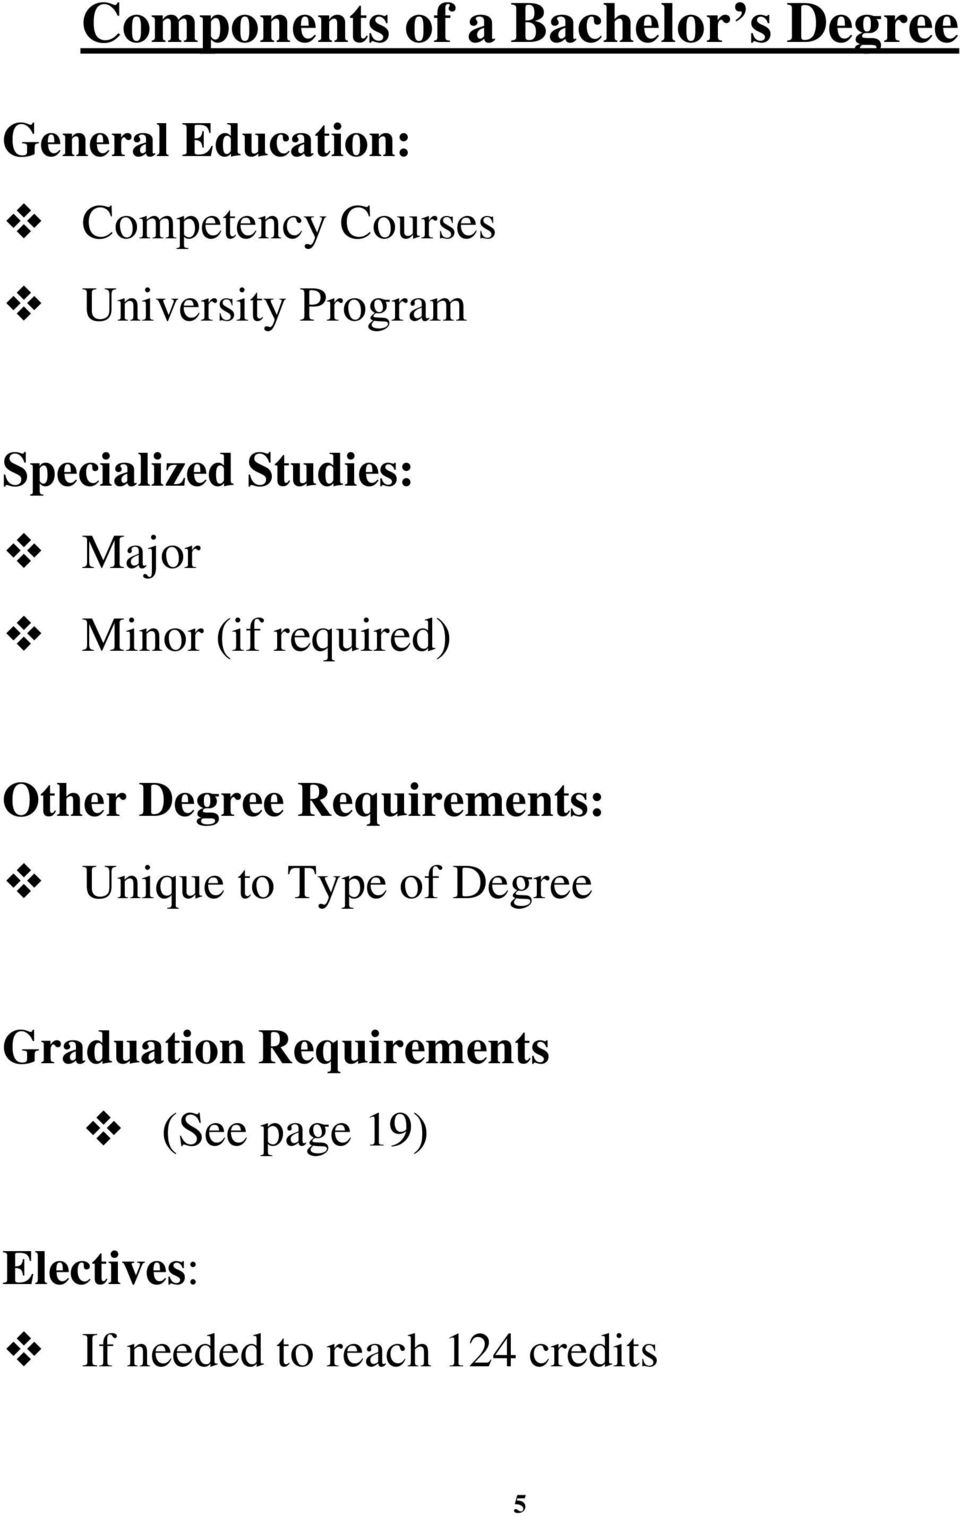 required) Other Degree Requirements: Unique to Type of Degree